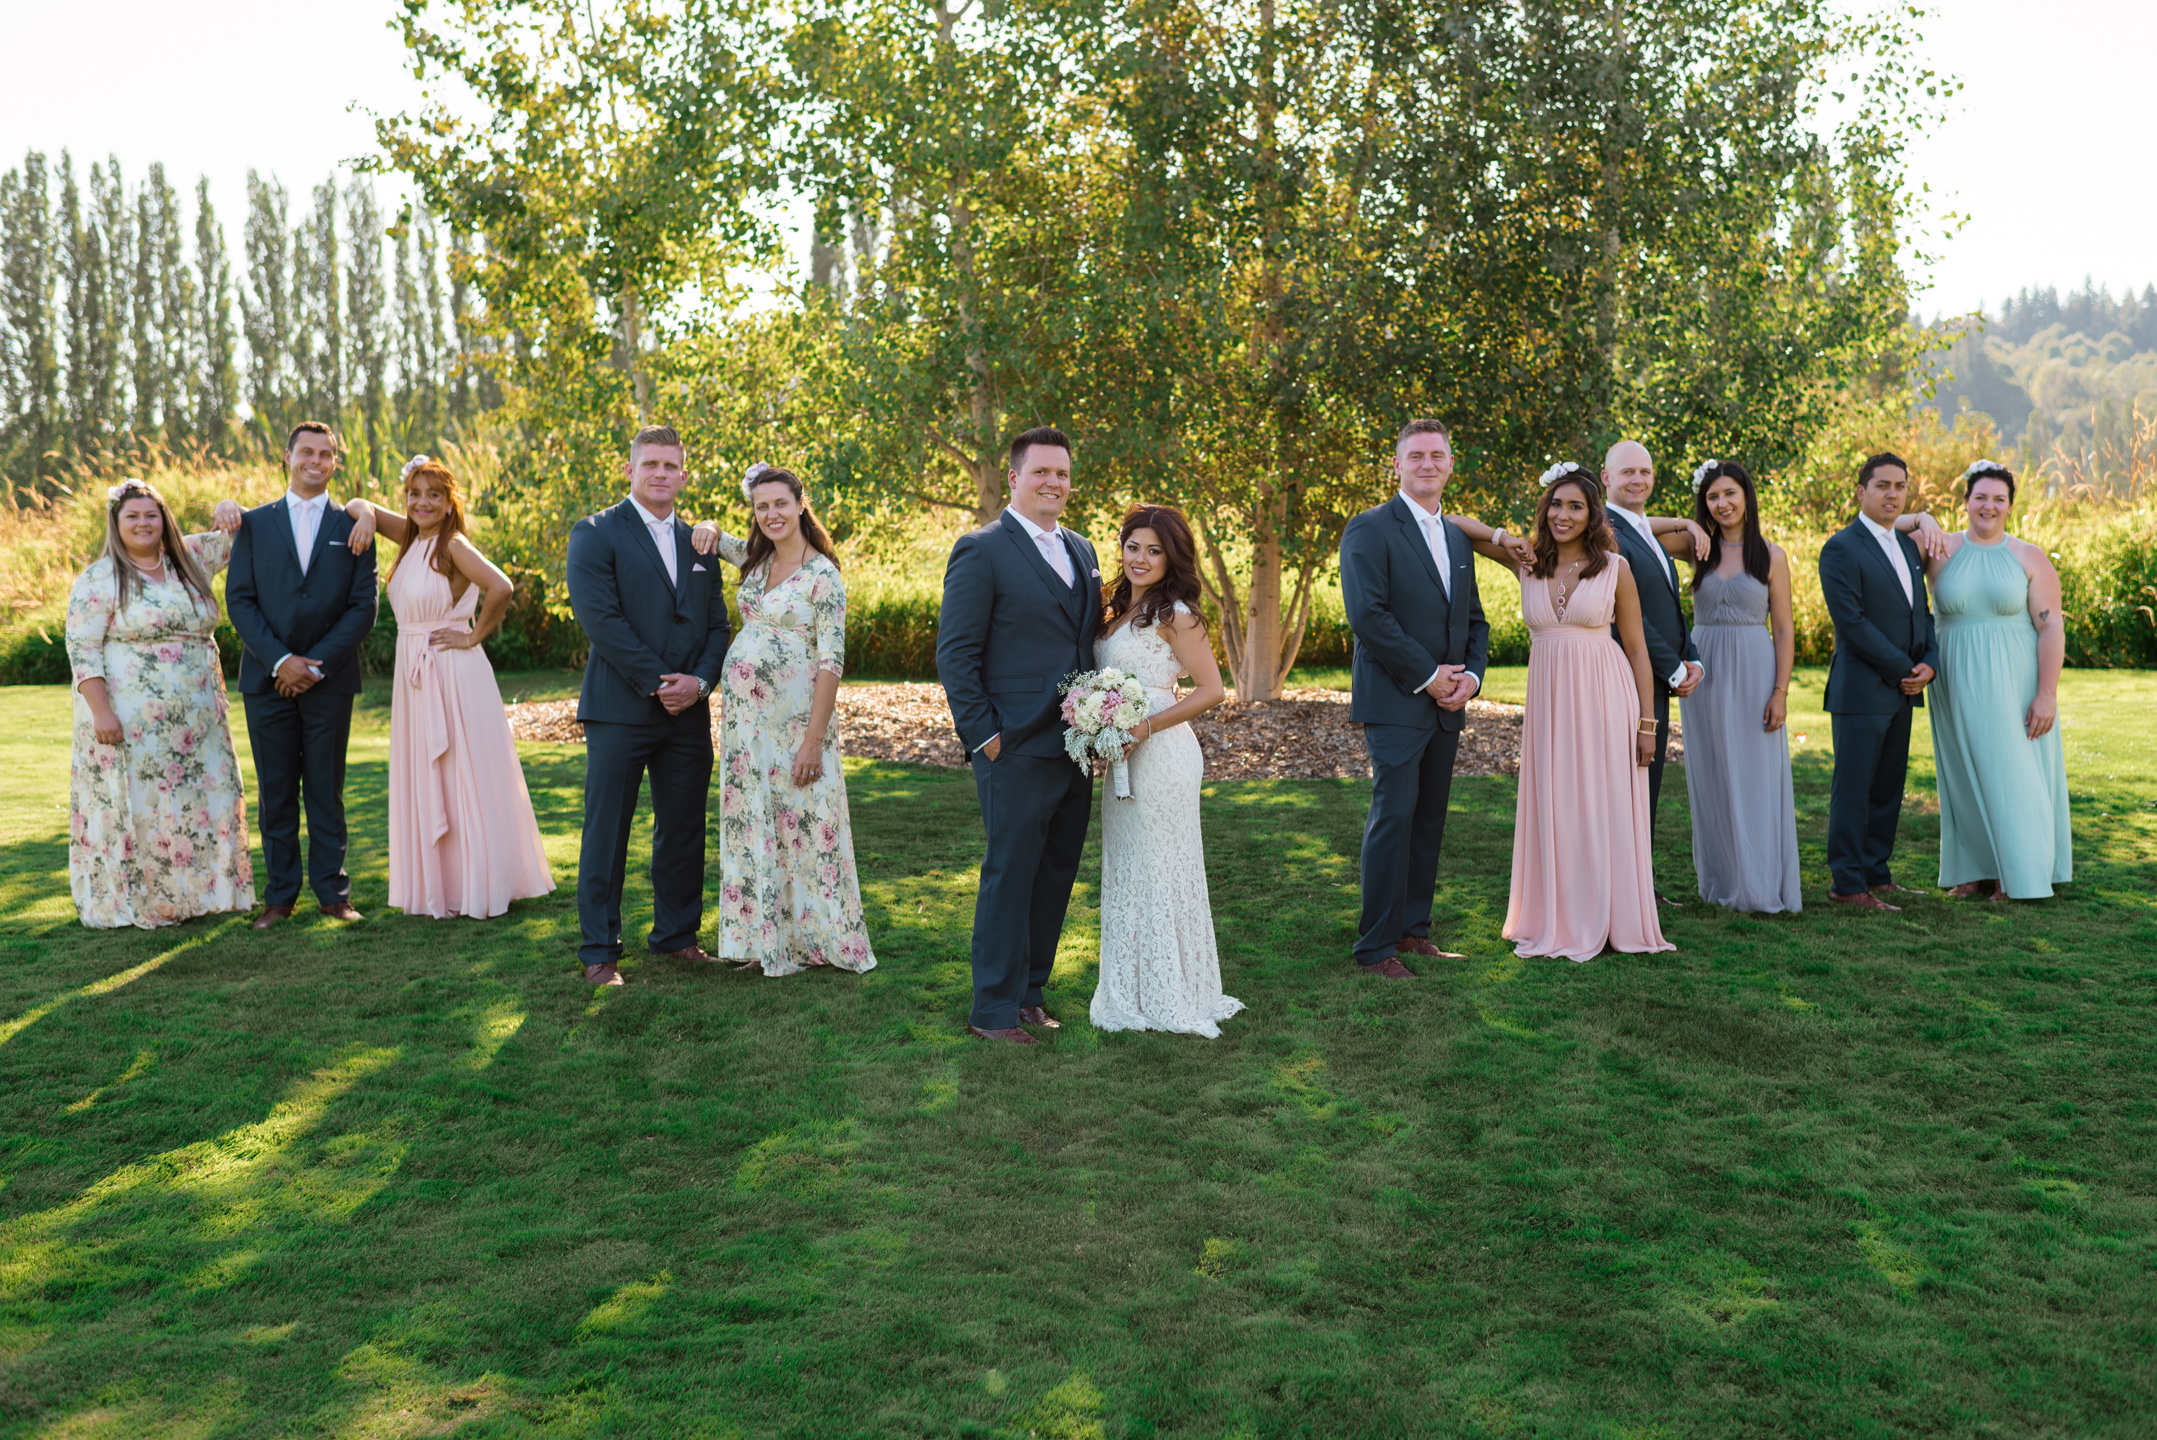 Editorial Wedding Party Portrait at Woodinville Lavender